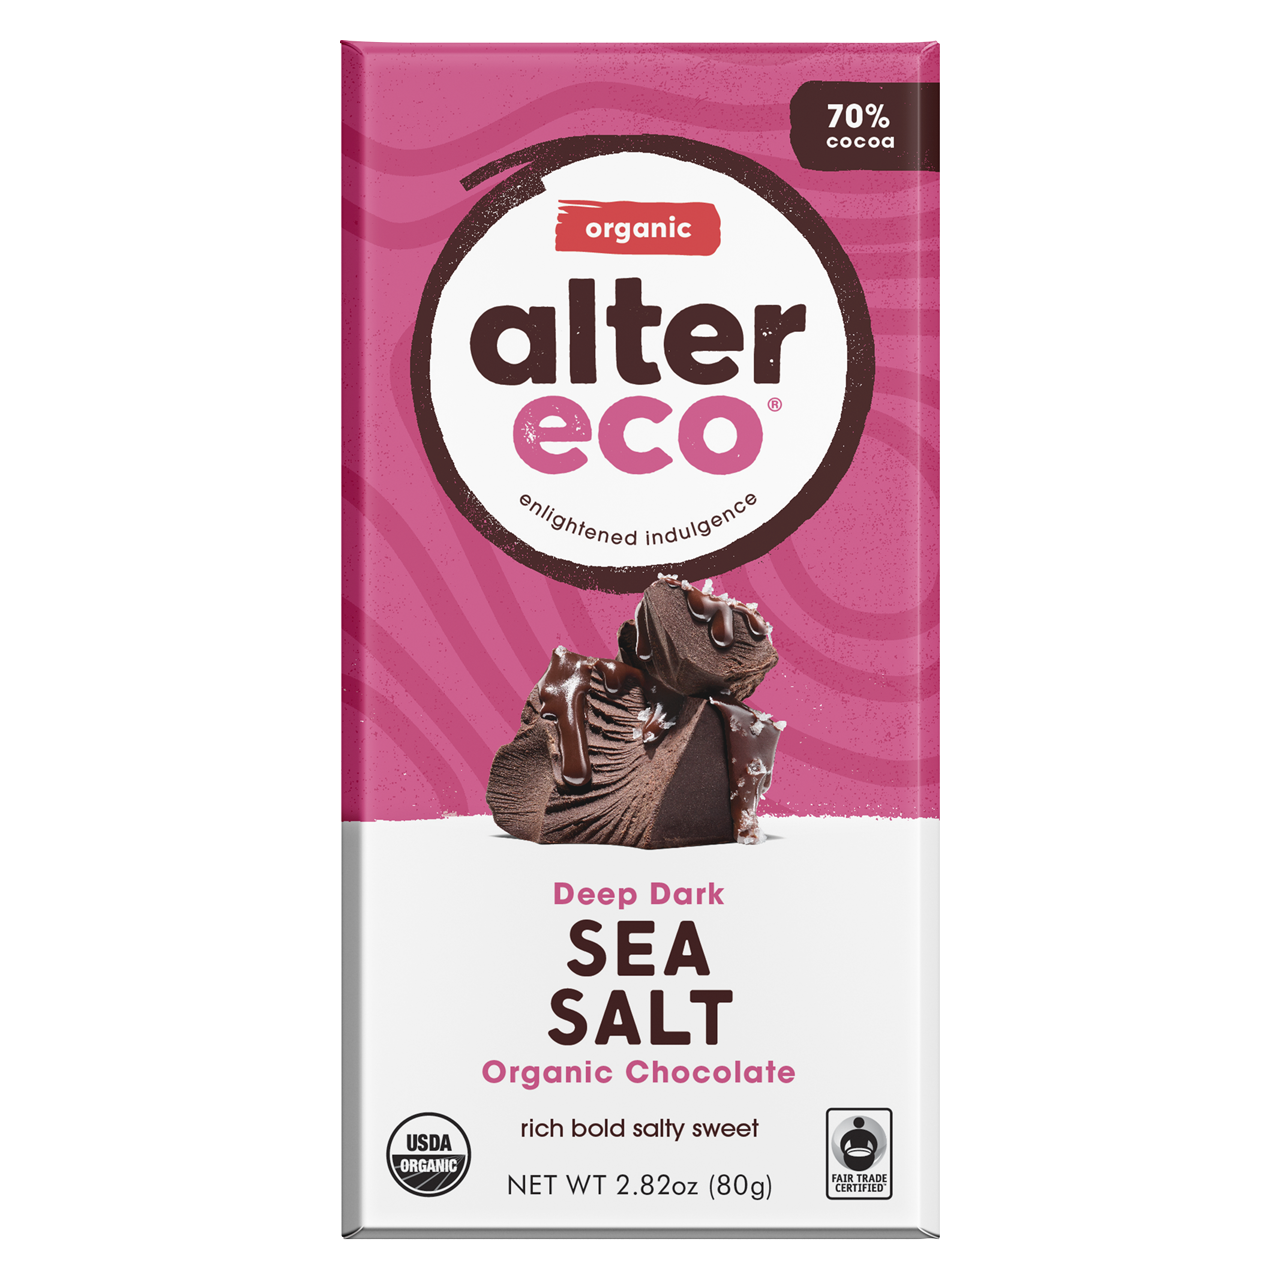 Alter Eco Dark Organic Chocolate